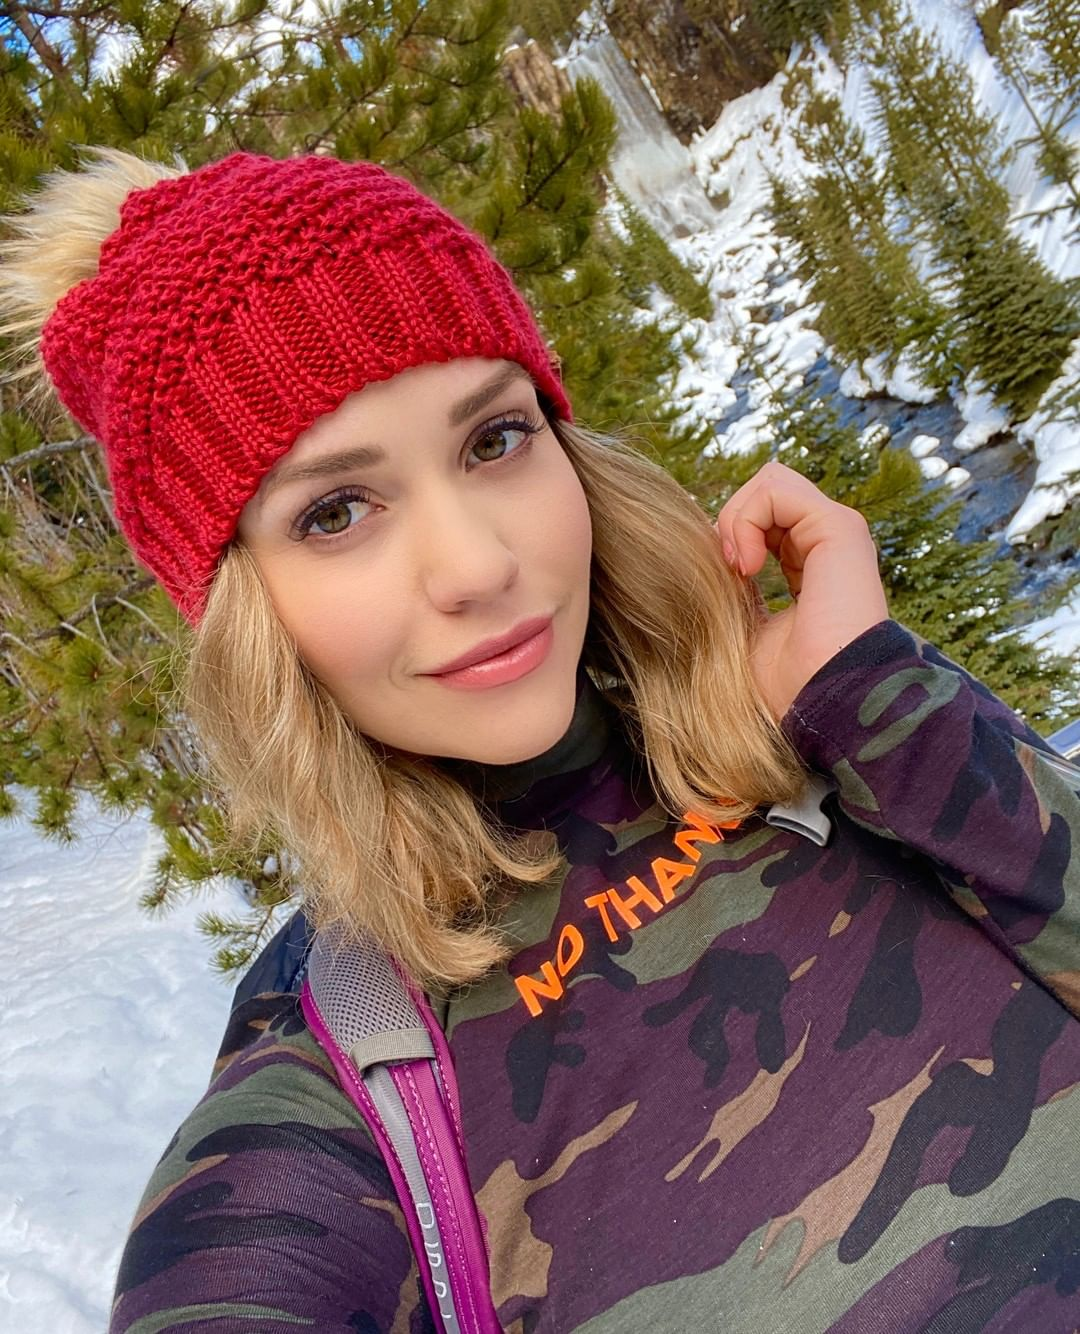 Mia Malkova is a model that appeared in G Eazy ft Tory Lanez Tyga Still Be Friends